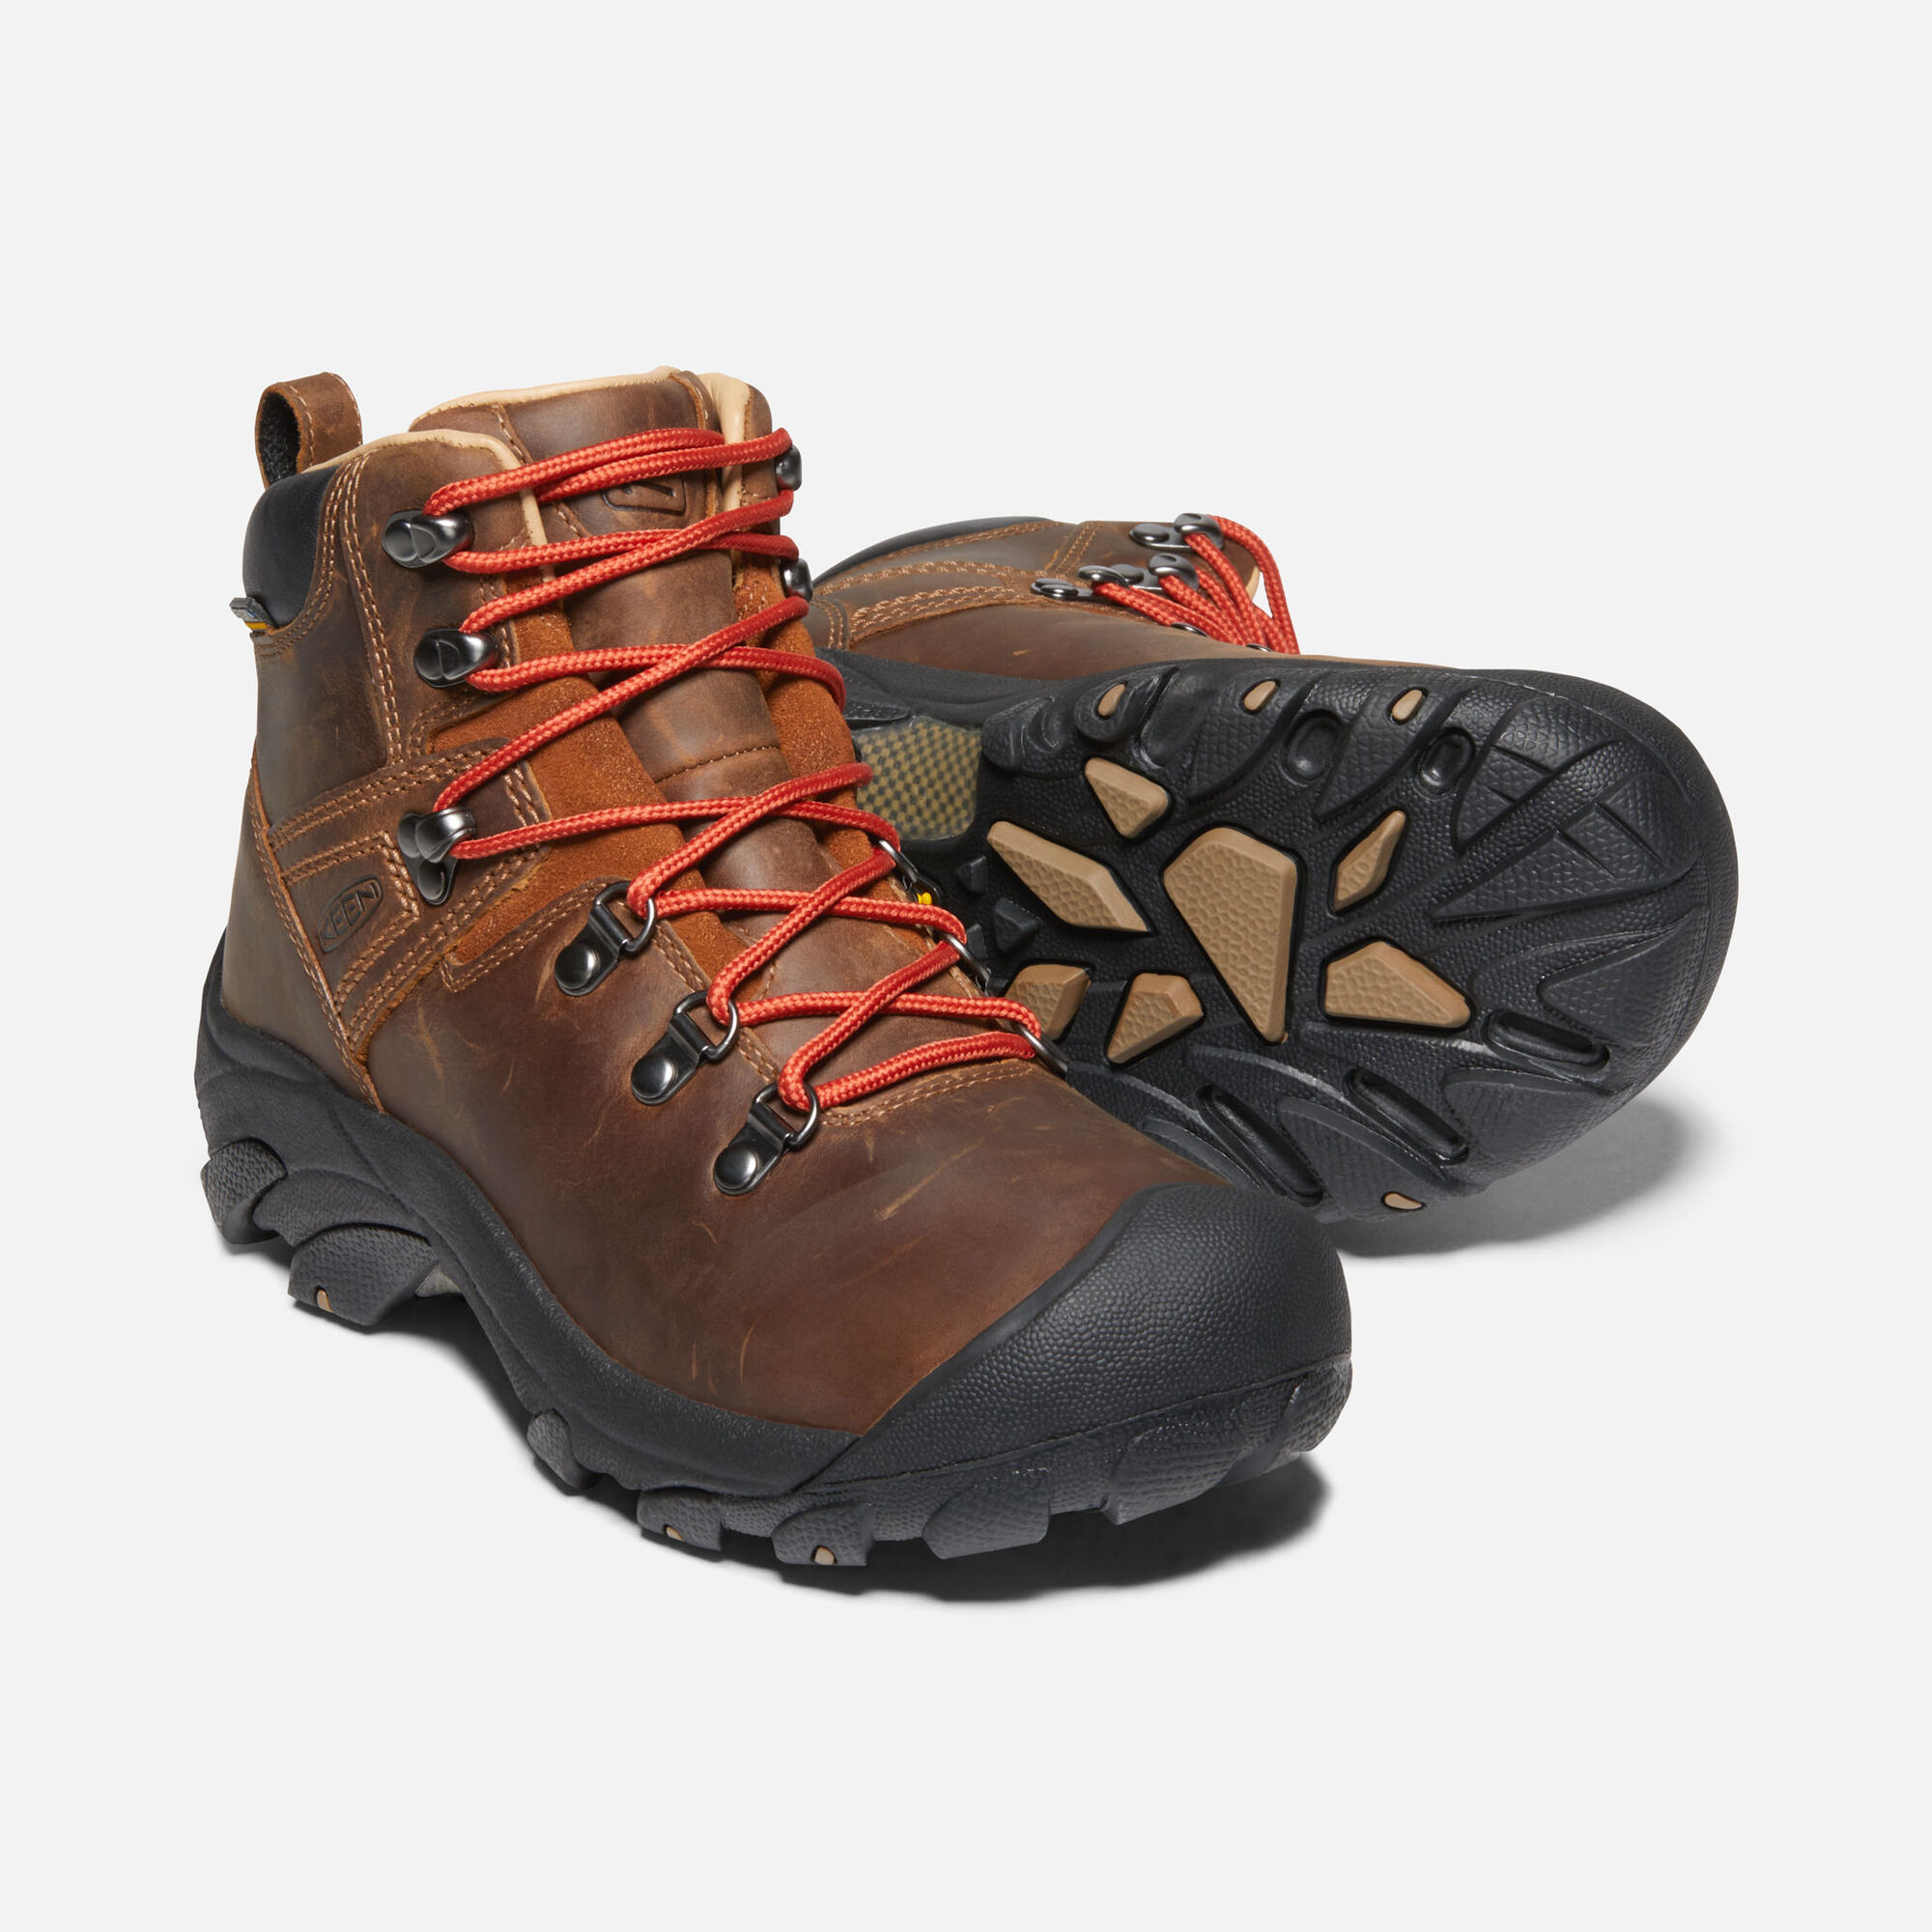 0a32c0b5bc8 Women's Pyrenees - European-Style Hiking Boots | KEEN Footwear